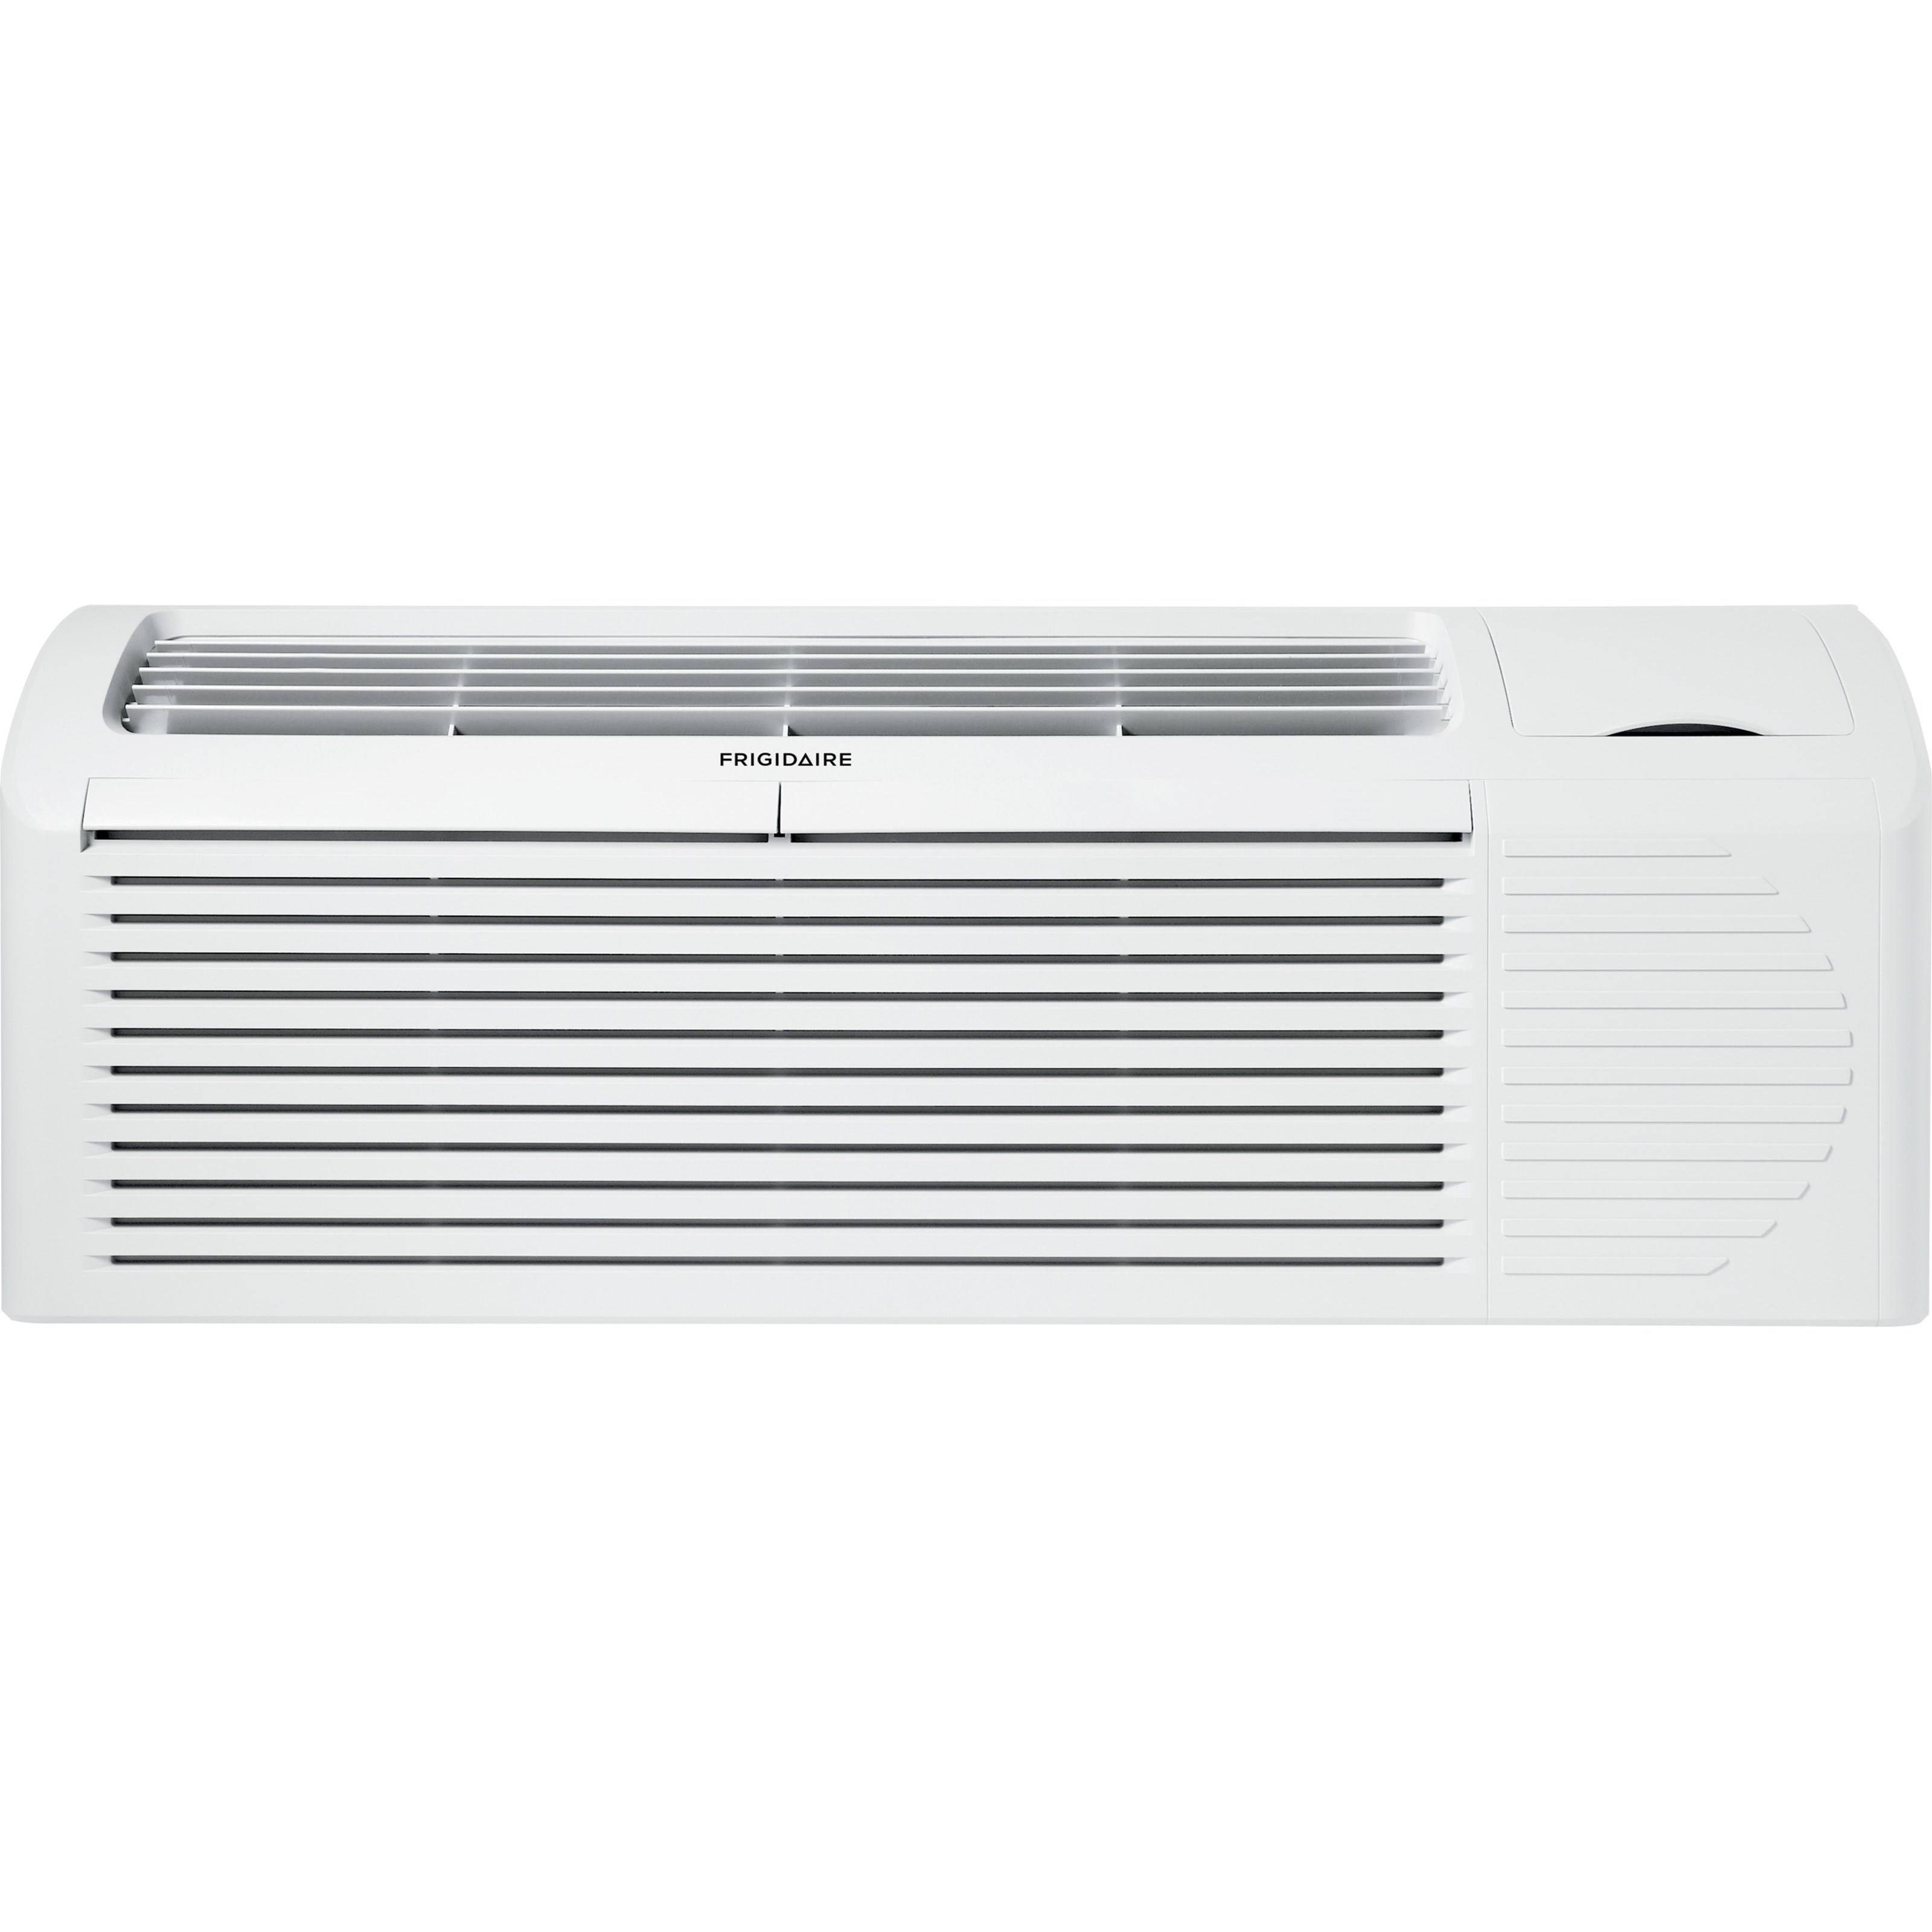 Air Conditioners PTAC unit with Electric Heat 7,000 BTU by Frigidaire at Fisher Home Furnishings